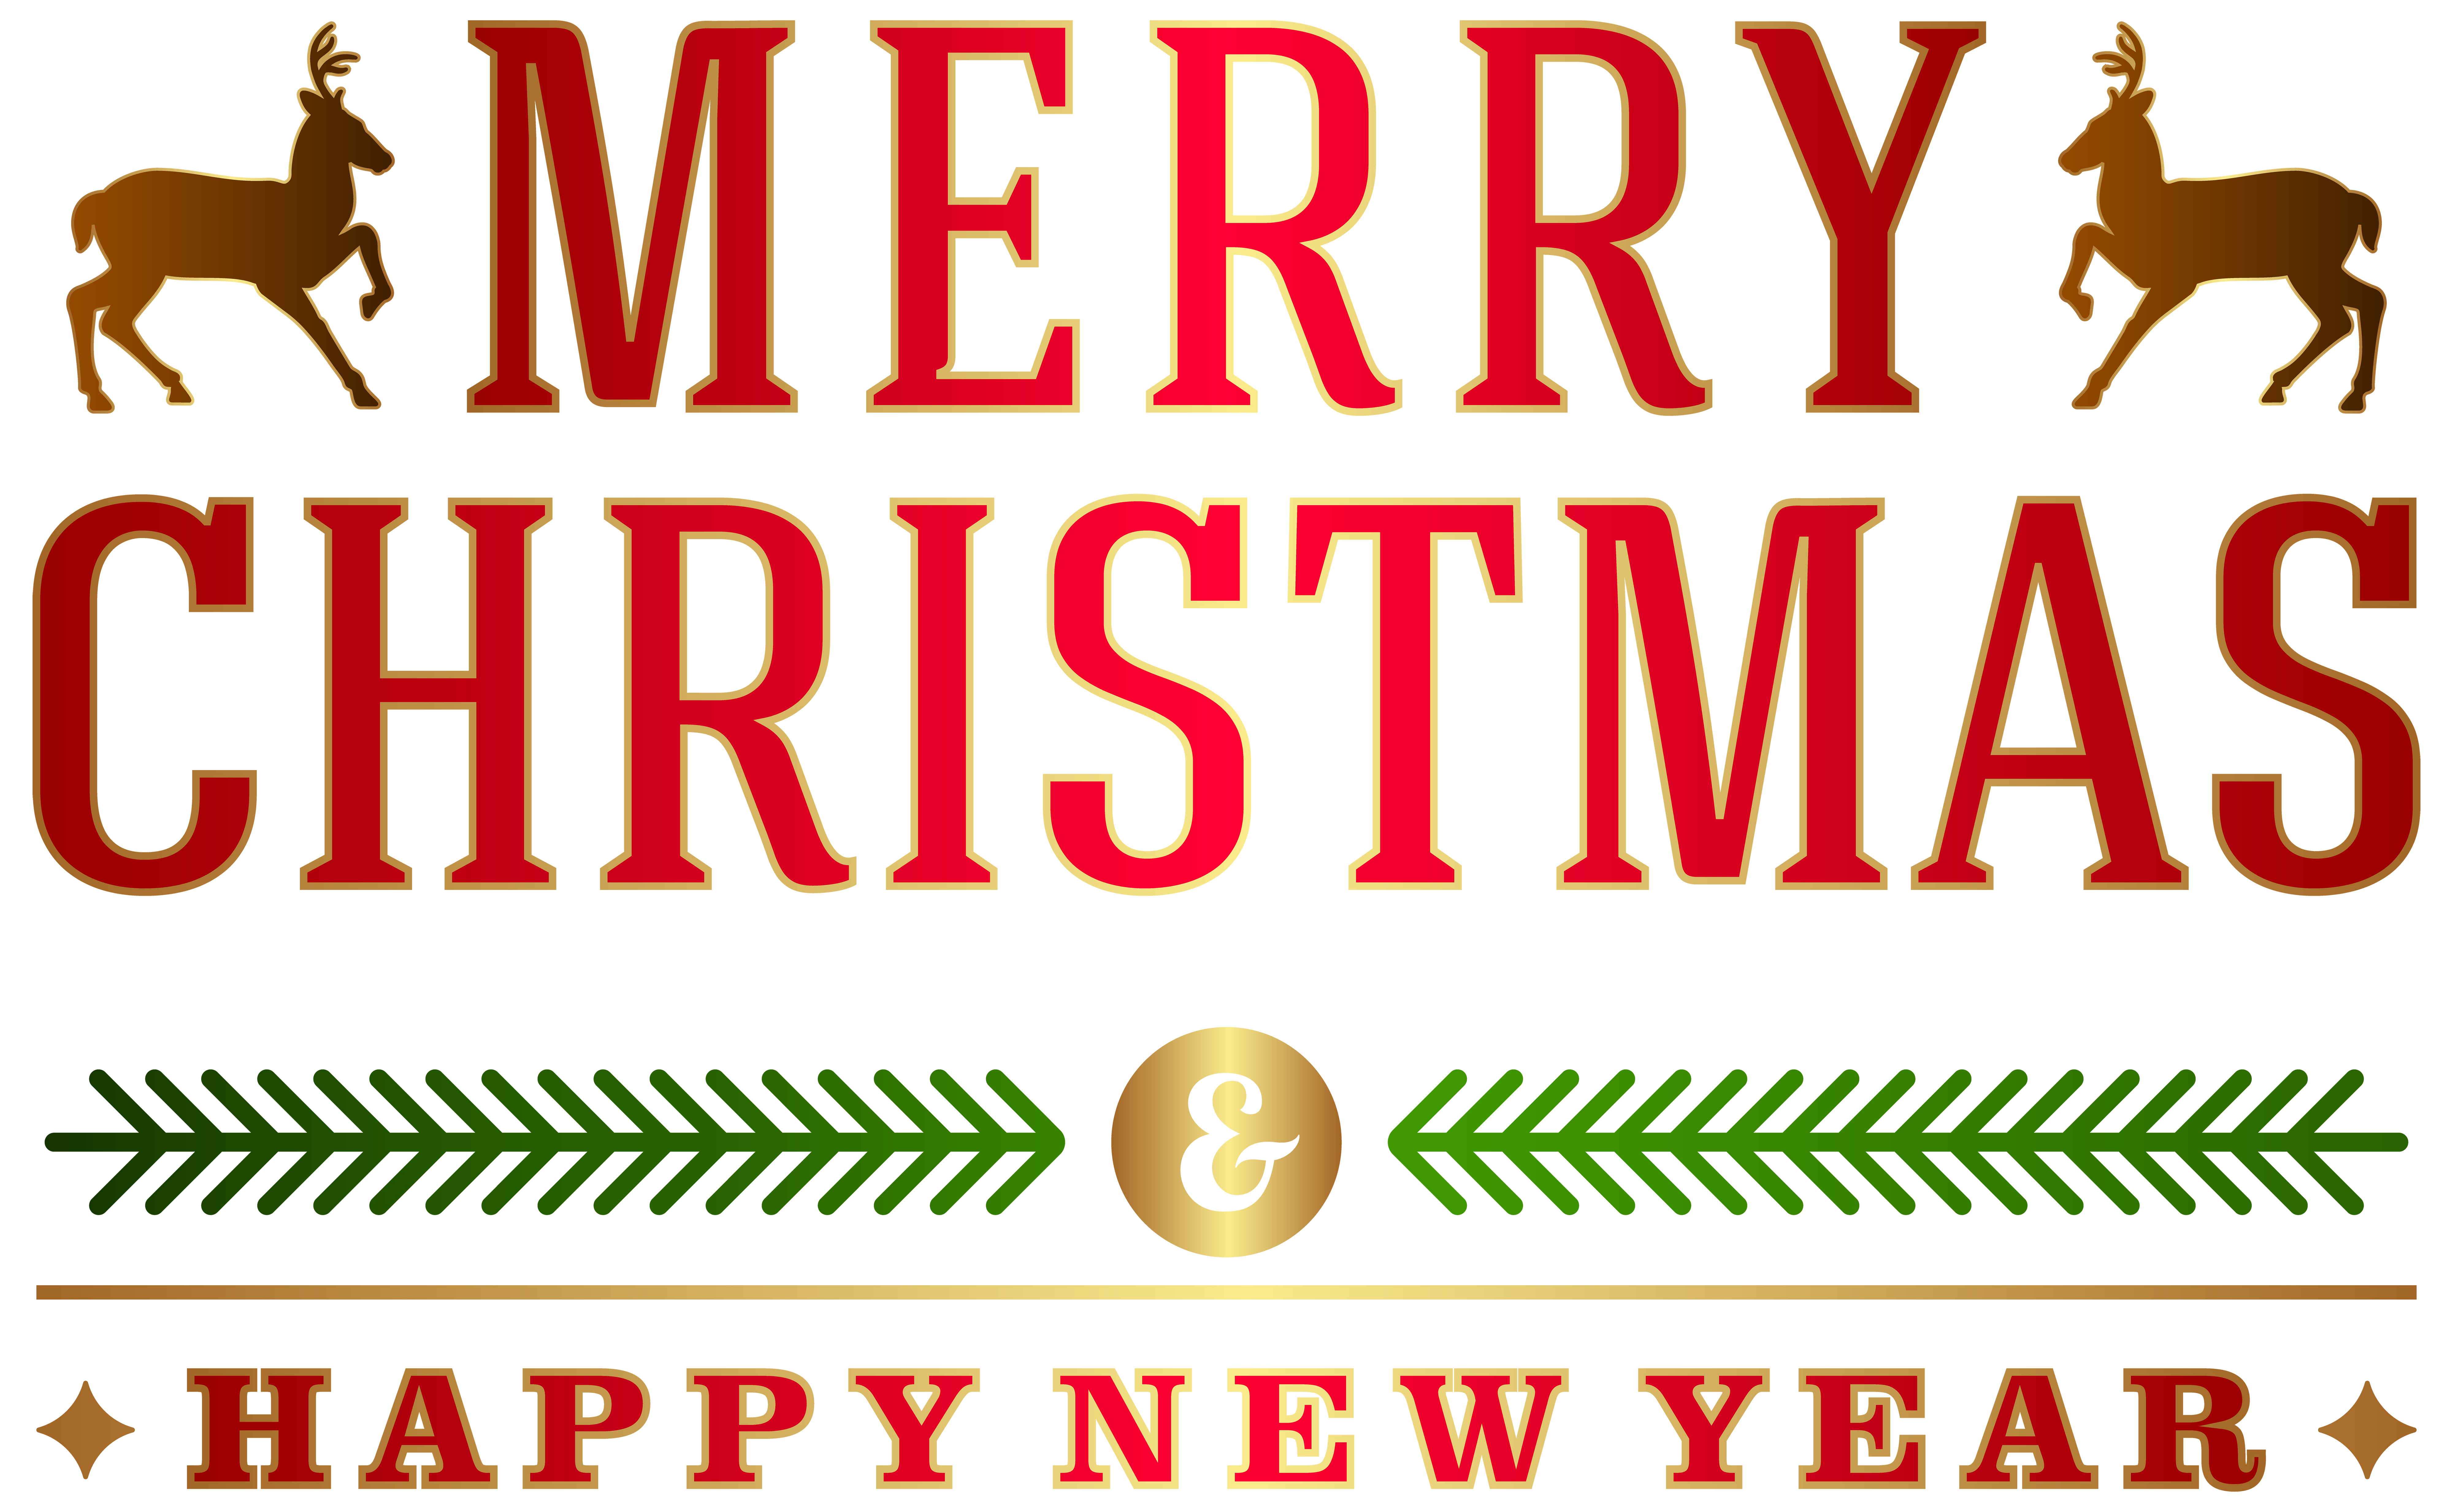 Merry Christmas Png Clip Art Gallery Yopriceville High Quality Images And Transparent Png Free Clipart Clip Art Merry Christmas Free Clip Art